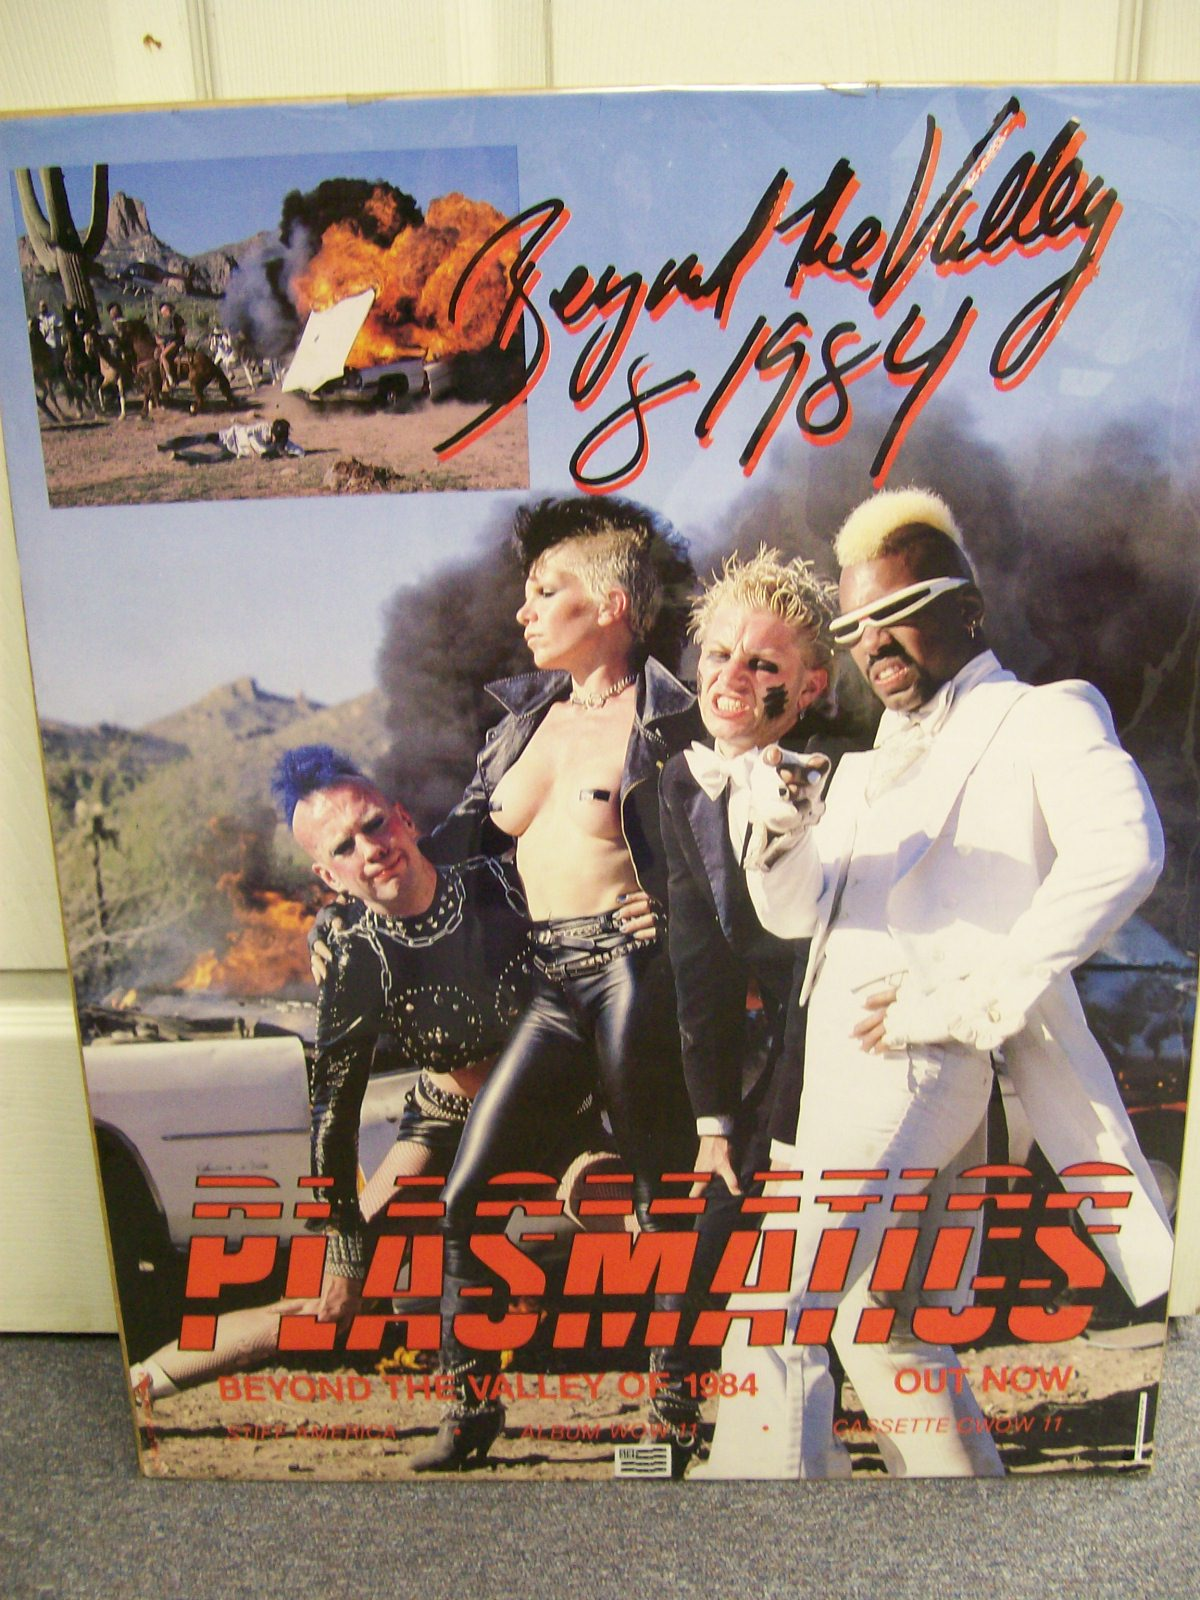 "PLASMATICS BEYOND THE VALLEY OF 1984 POSTER 22"" X 28"""